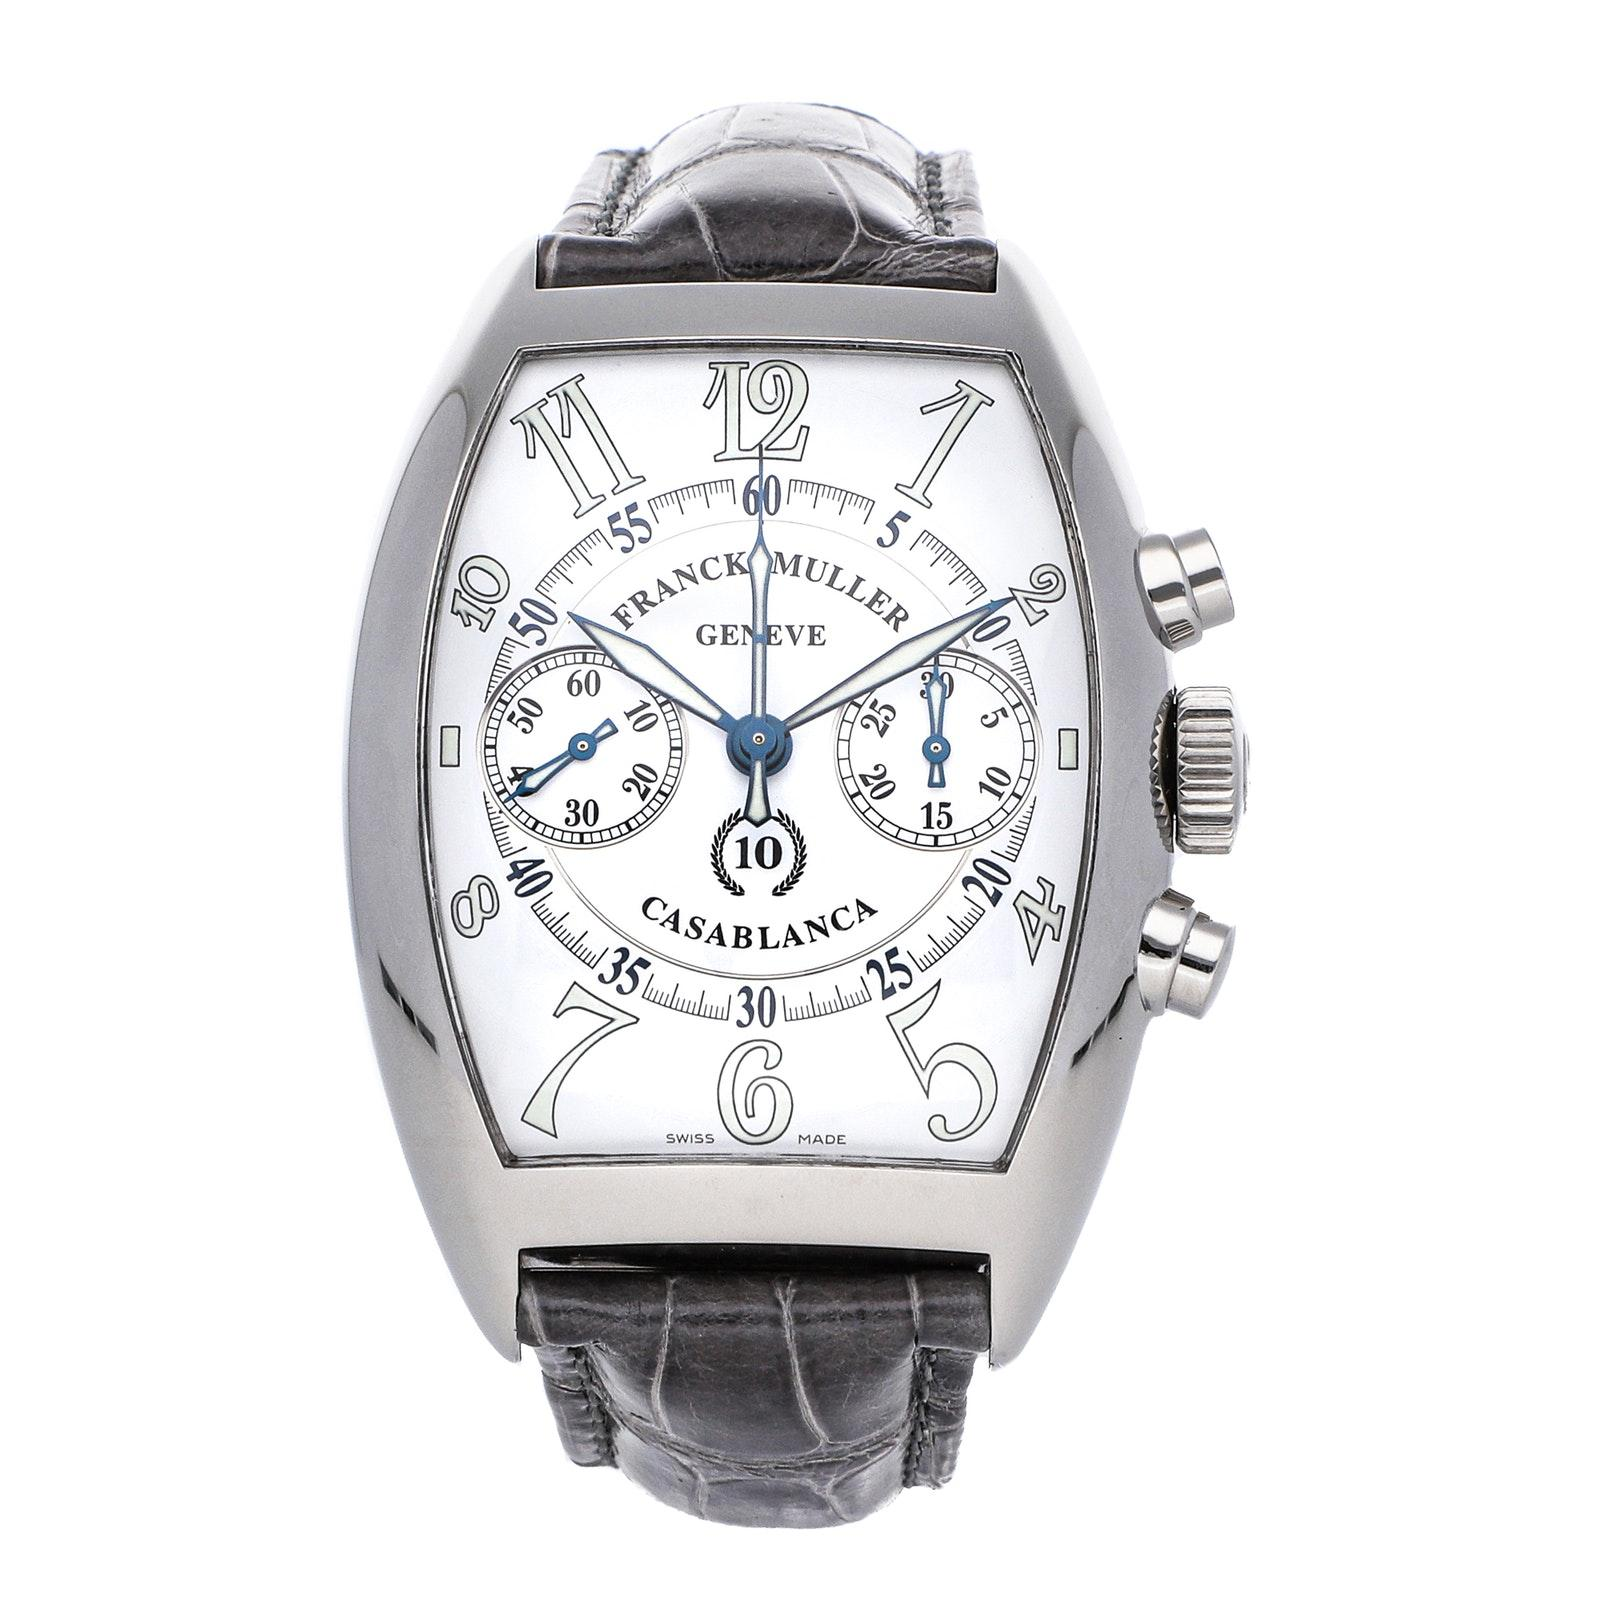 Pre-Owned Franck Muller Casablanca Chronograph 10th Anniversary Limited Edition 8880 C CC CASABLANCA